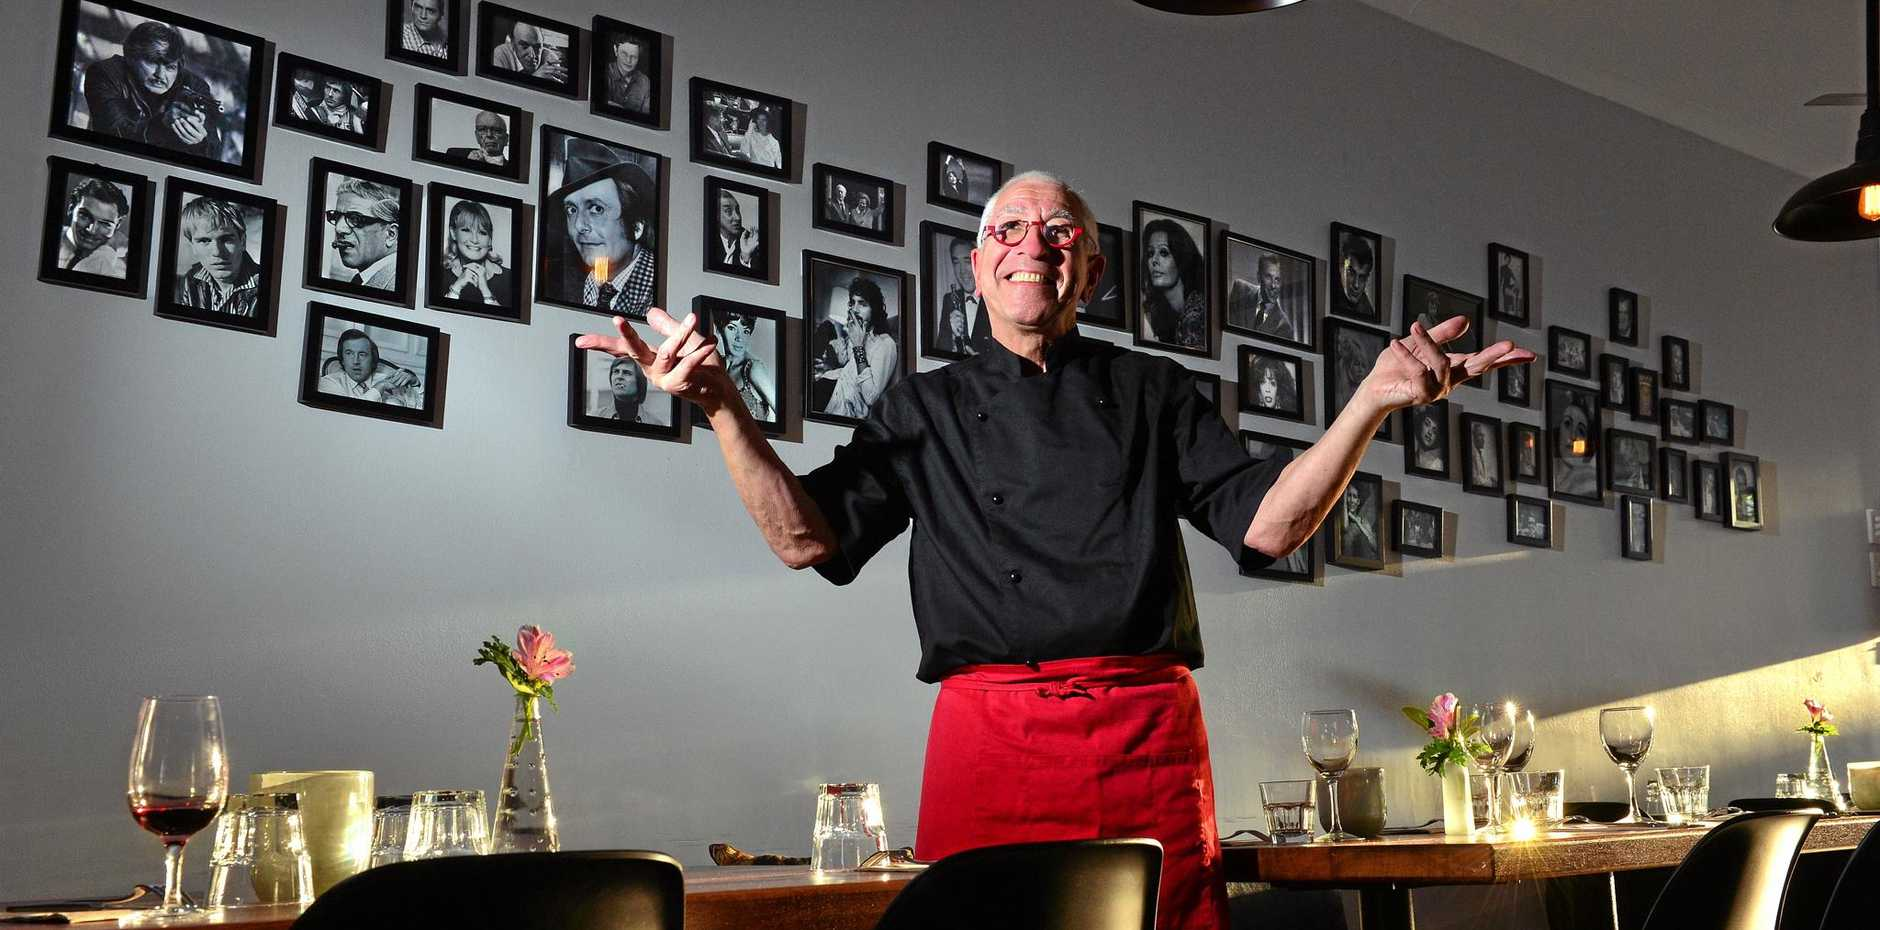 CELEBRITY CHEF: Chef Stephen Pulman, of Bin 106 in Mooloolaba, has cooked for celebrities from Ronnie Corbett, John Wayne and Dame Joan Sutherland to Bette Midler and Neil Diamond.